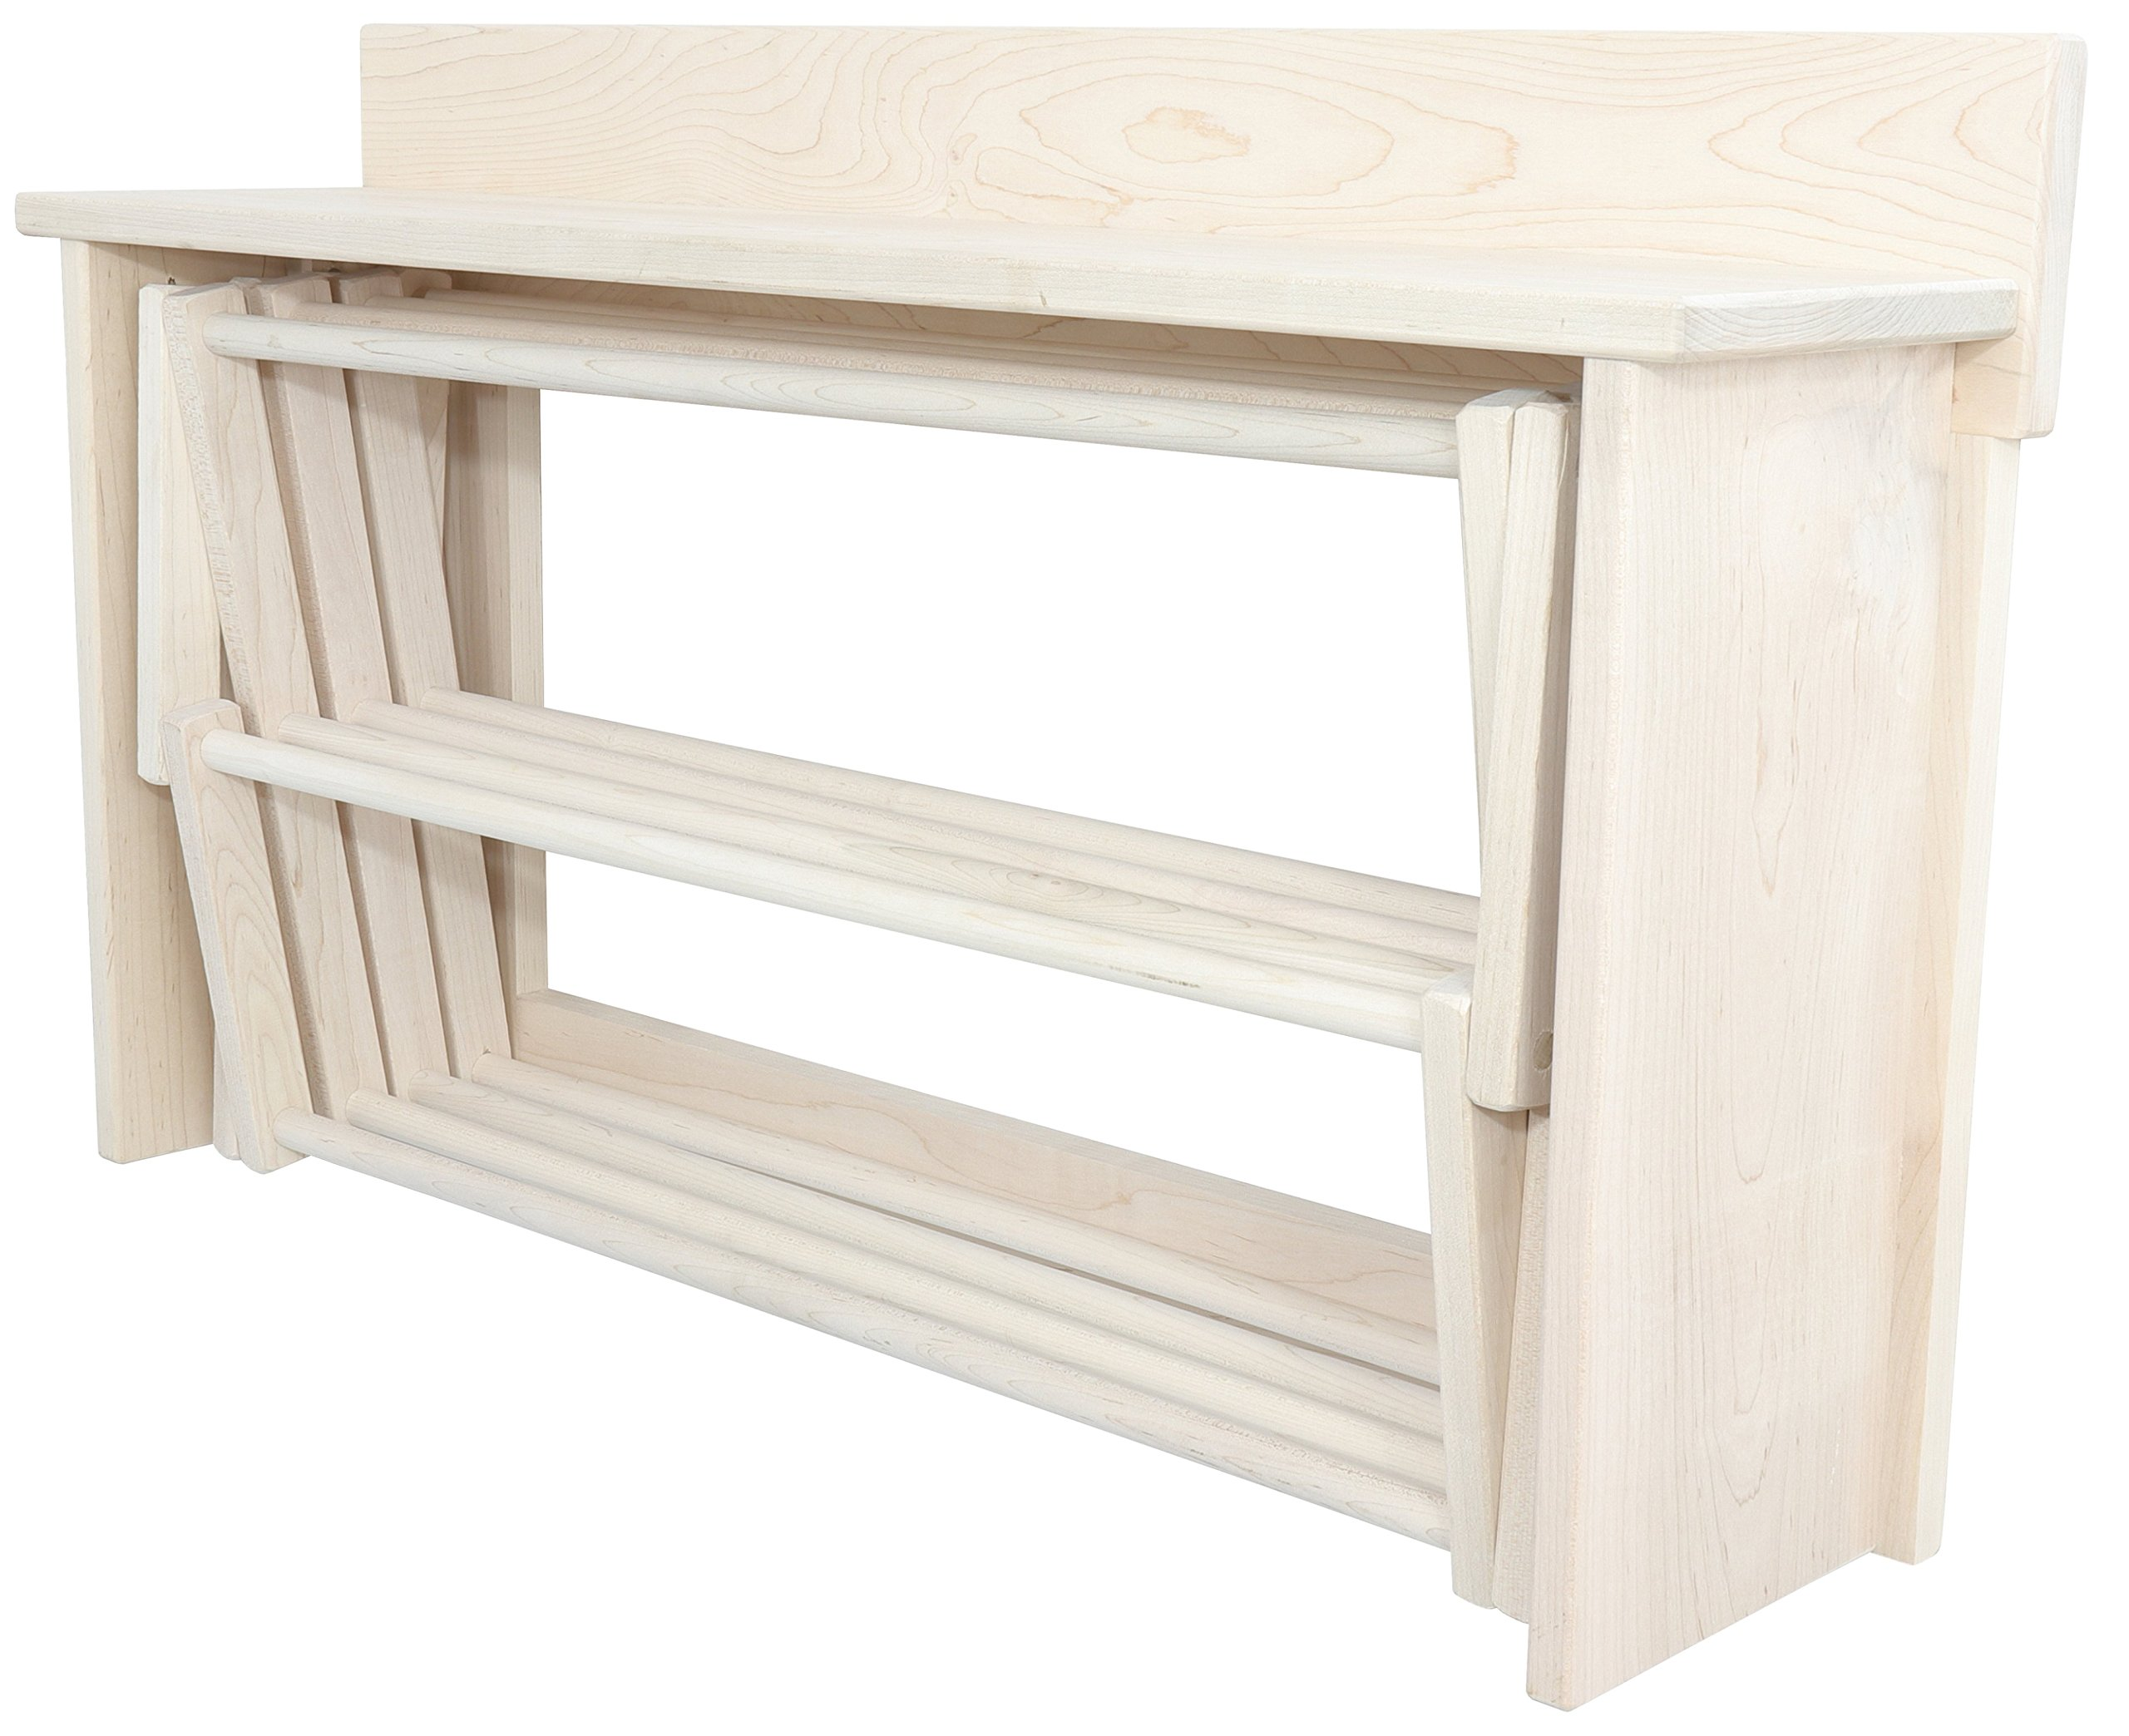 Extra Large Wall Clothes Drying Rack ~ Heavy Duty Solid Maple Hardwood, Folding, Collapses to 35'' x 20'' x 8'', Hand Built in USA, Unfinished, by Pennsylvania Woodworks